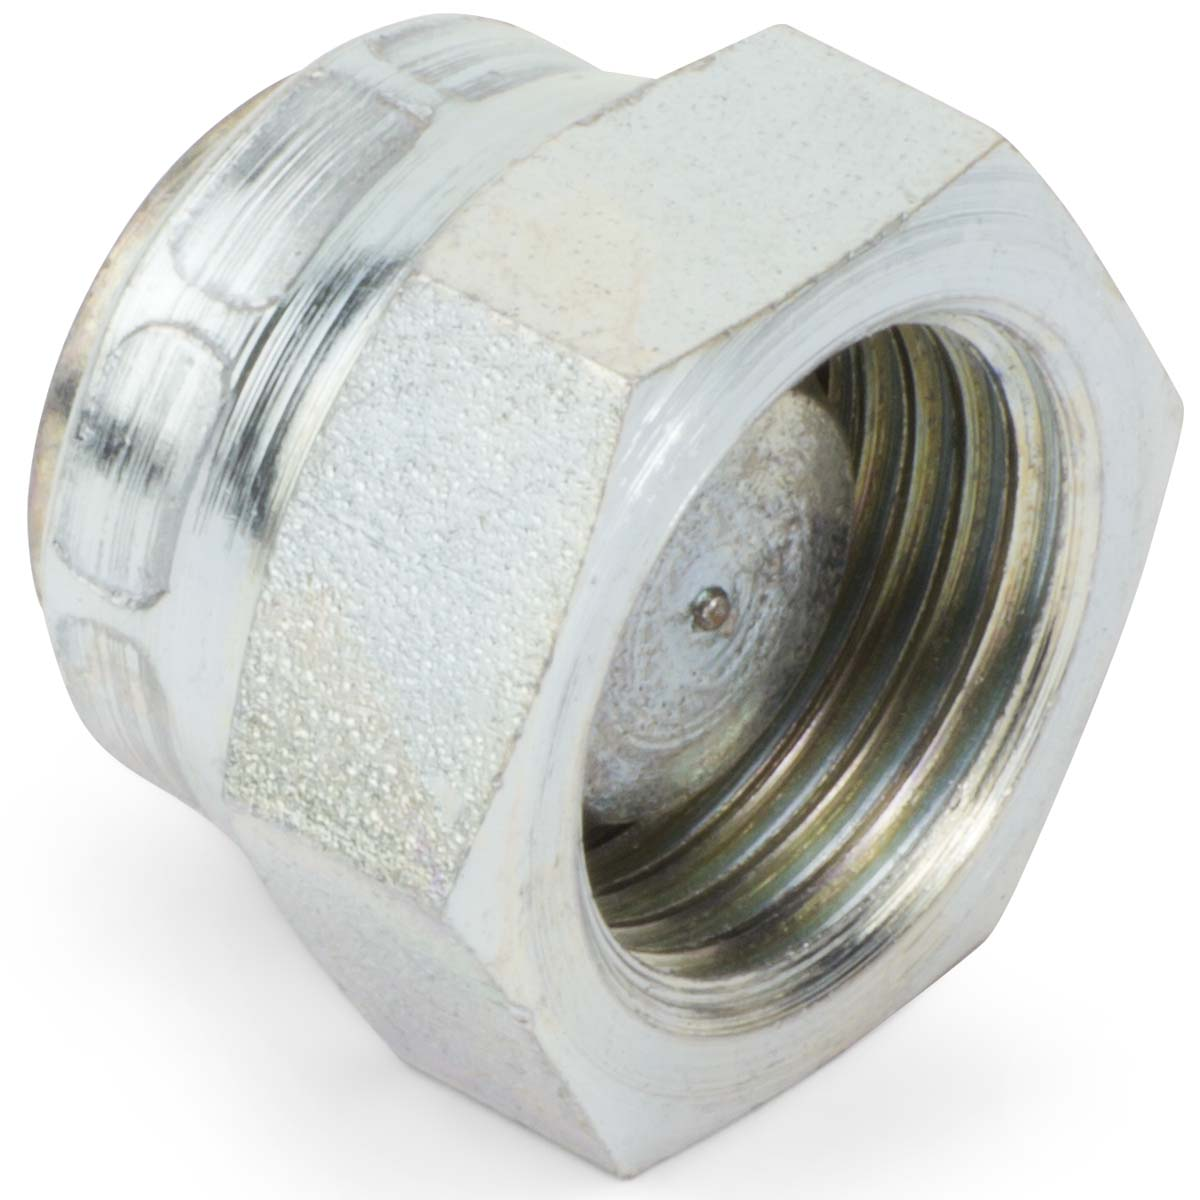 Bspp swivel cap kimball midwest